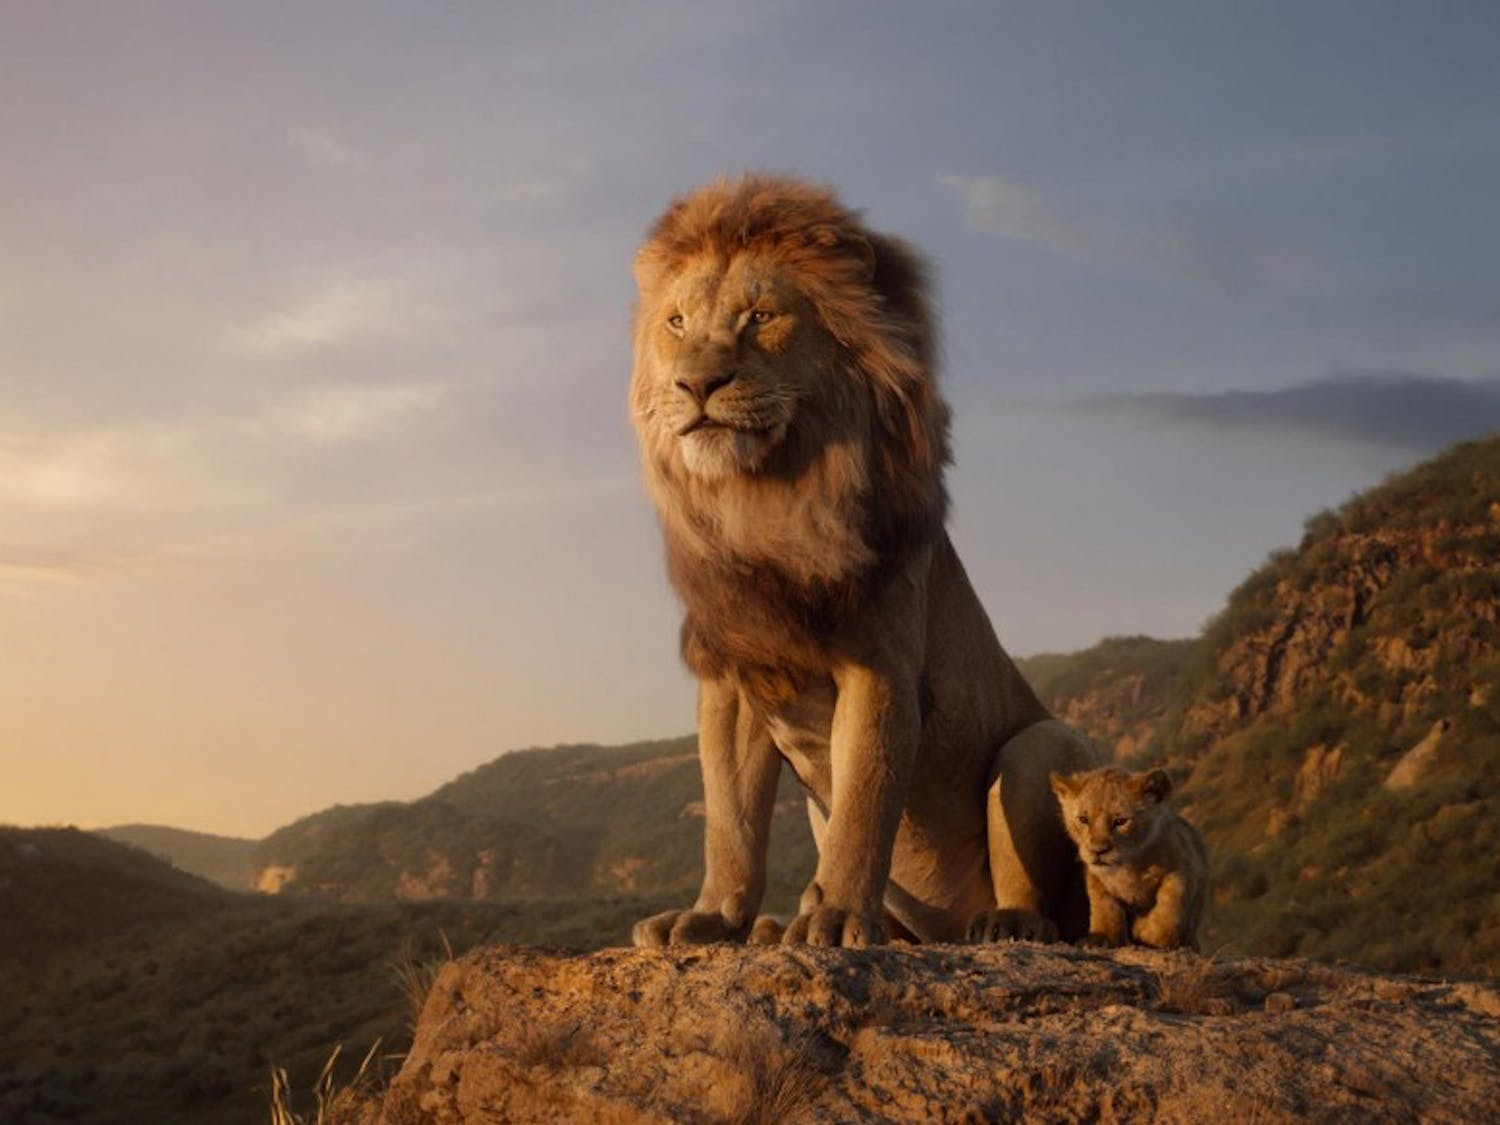 """The Lion King"" graces the big screen once again in the live-action remake, demonstrating the meticulous detail of CGI and powerful visual effects that make this film gorgeous."